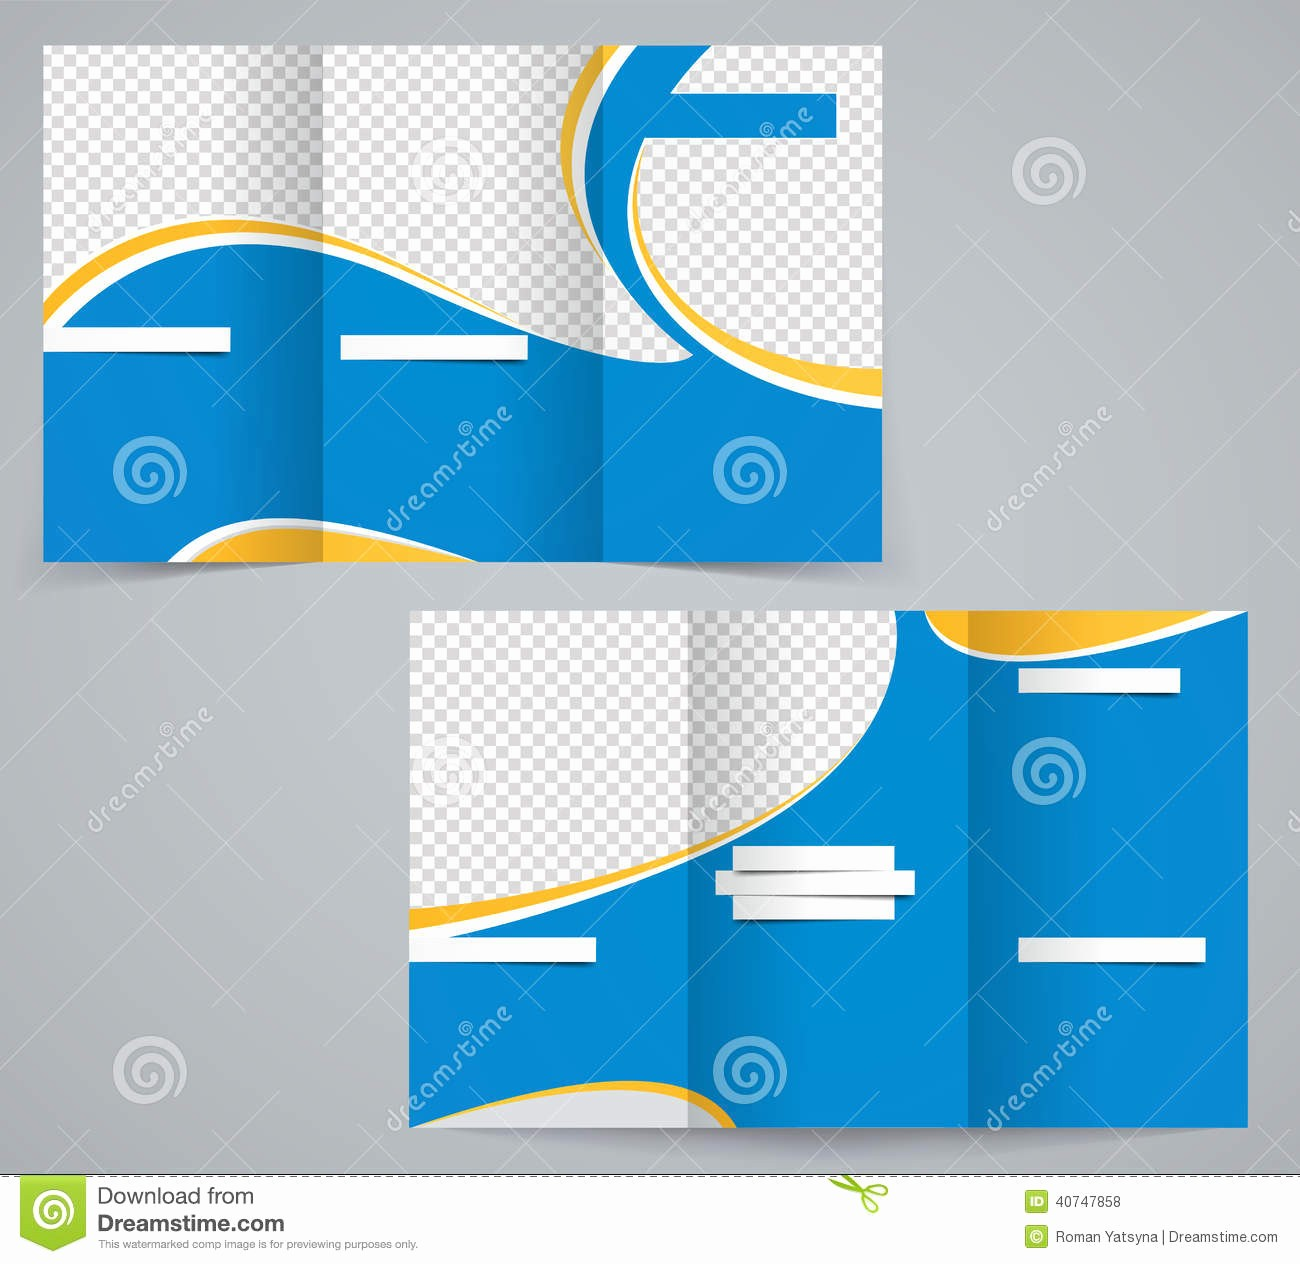 Templates for Flyers and Brochures Fresh Three Fold Business Brochure Template Corporate Flyer